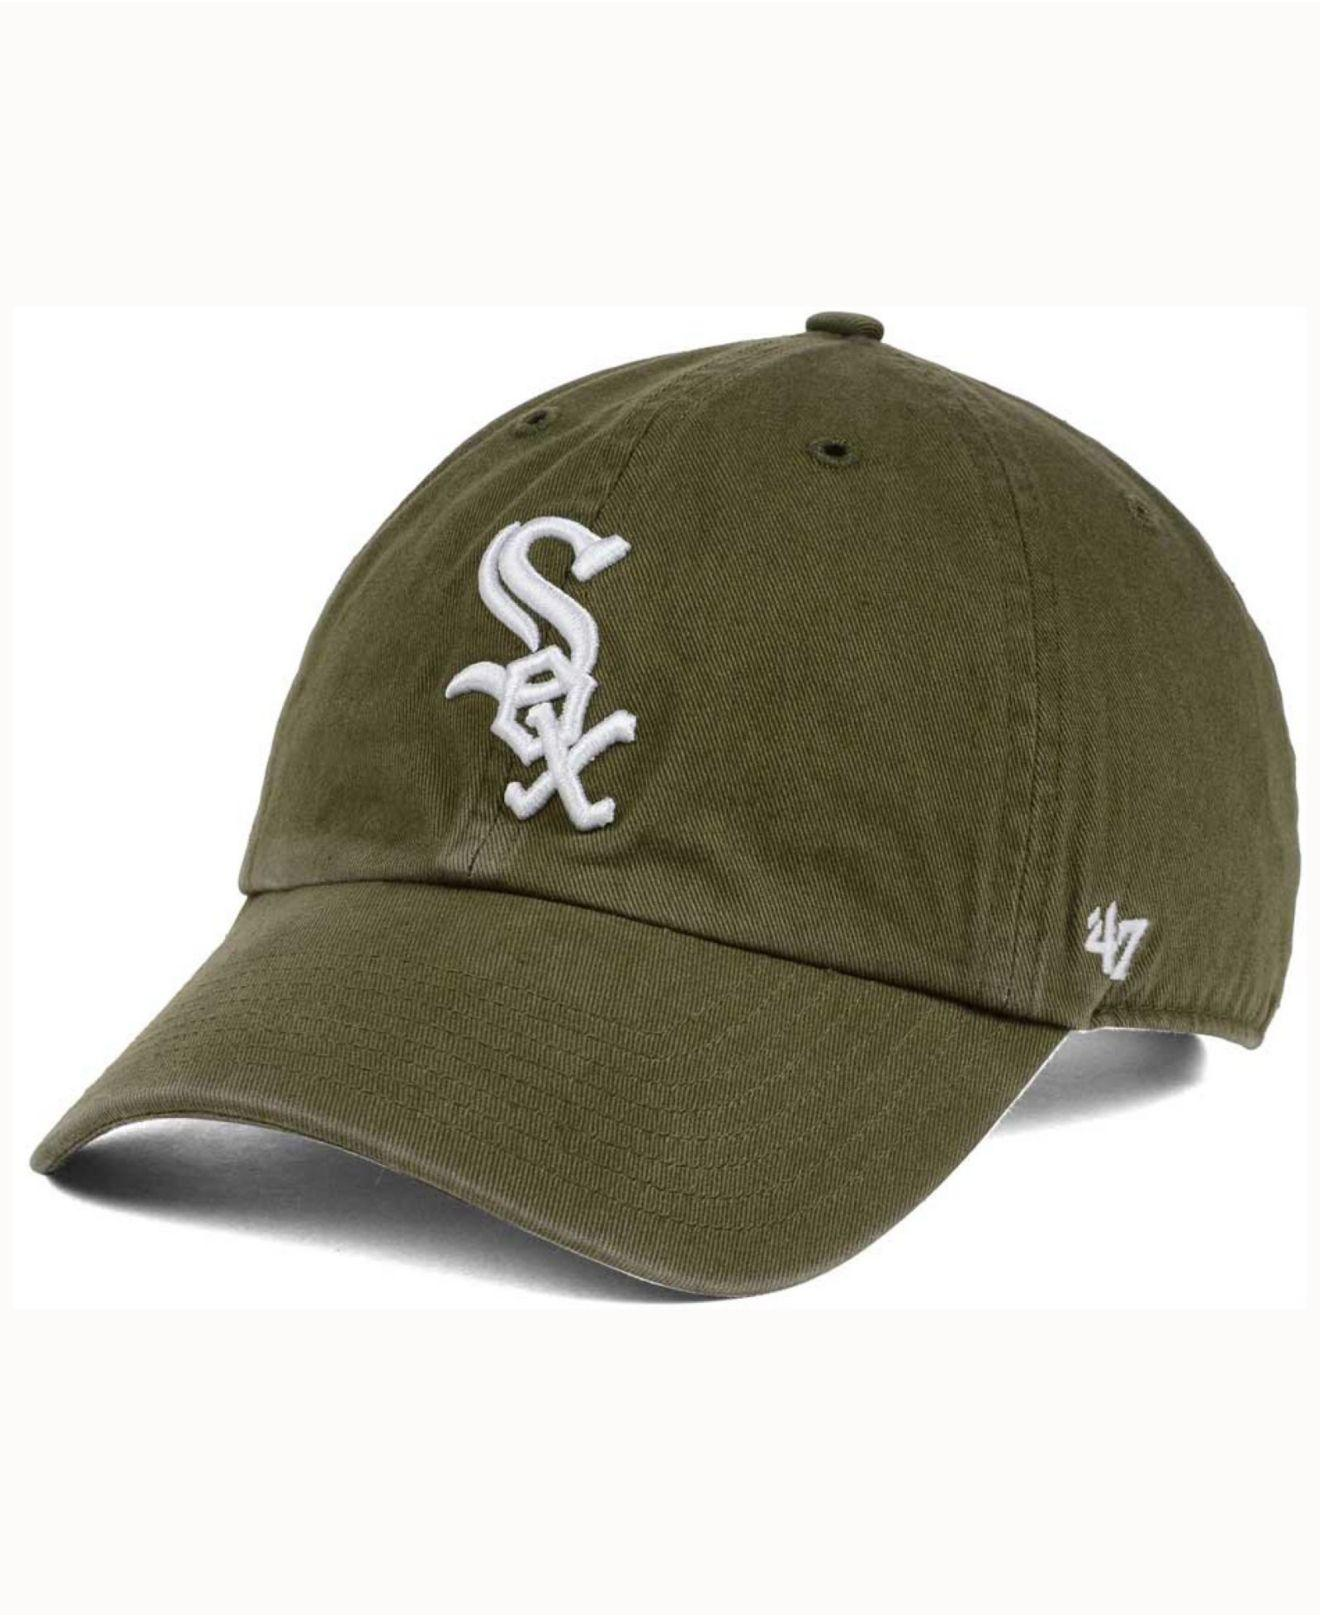 size 40 208cd a6b4b ... coupon code for 47 brand. womens green olive white clean up cap aa6ad  513f2